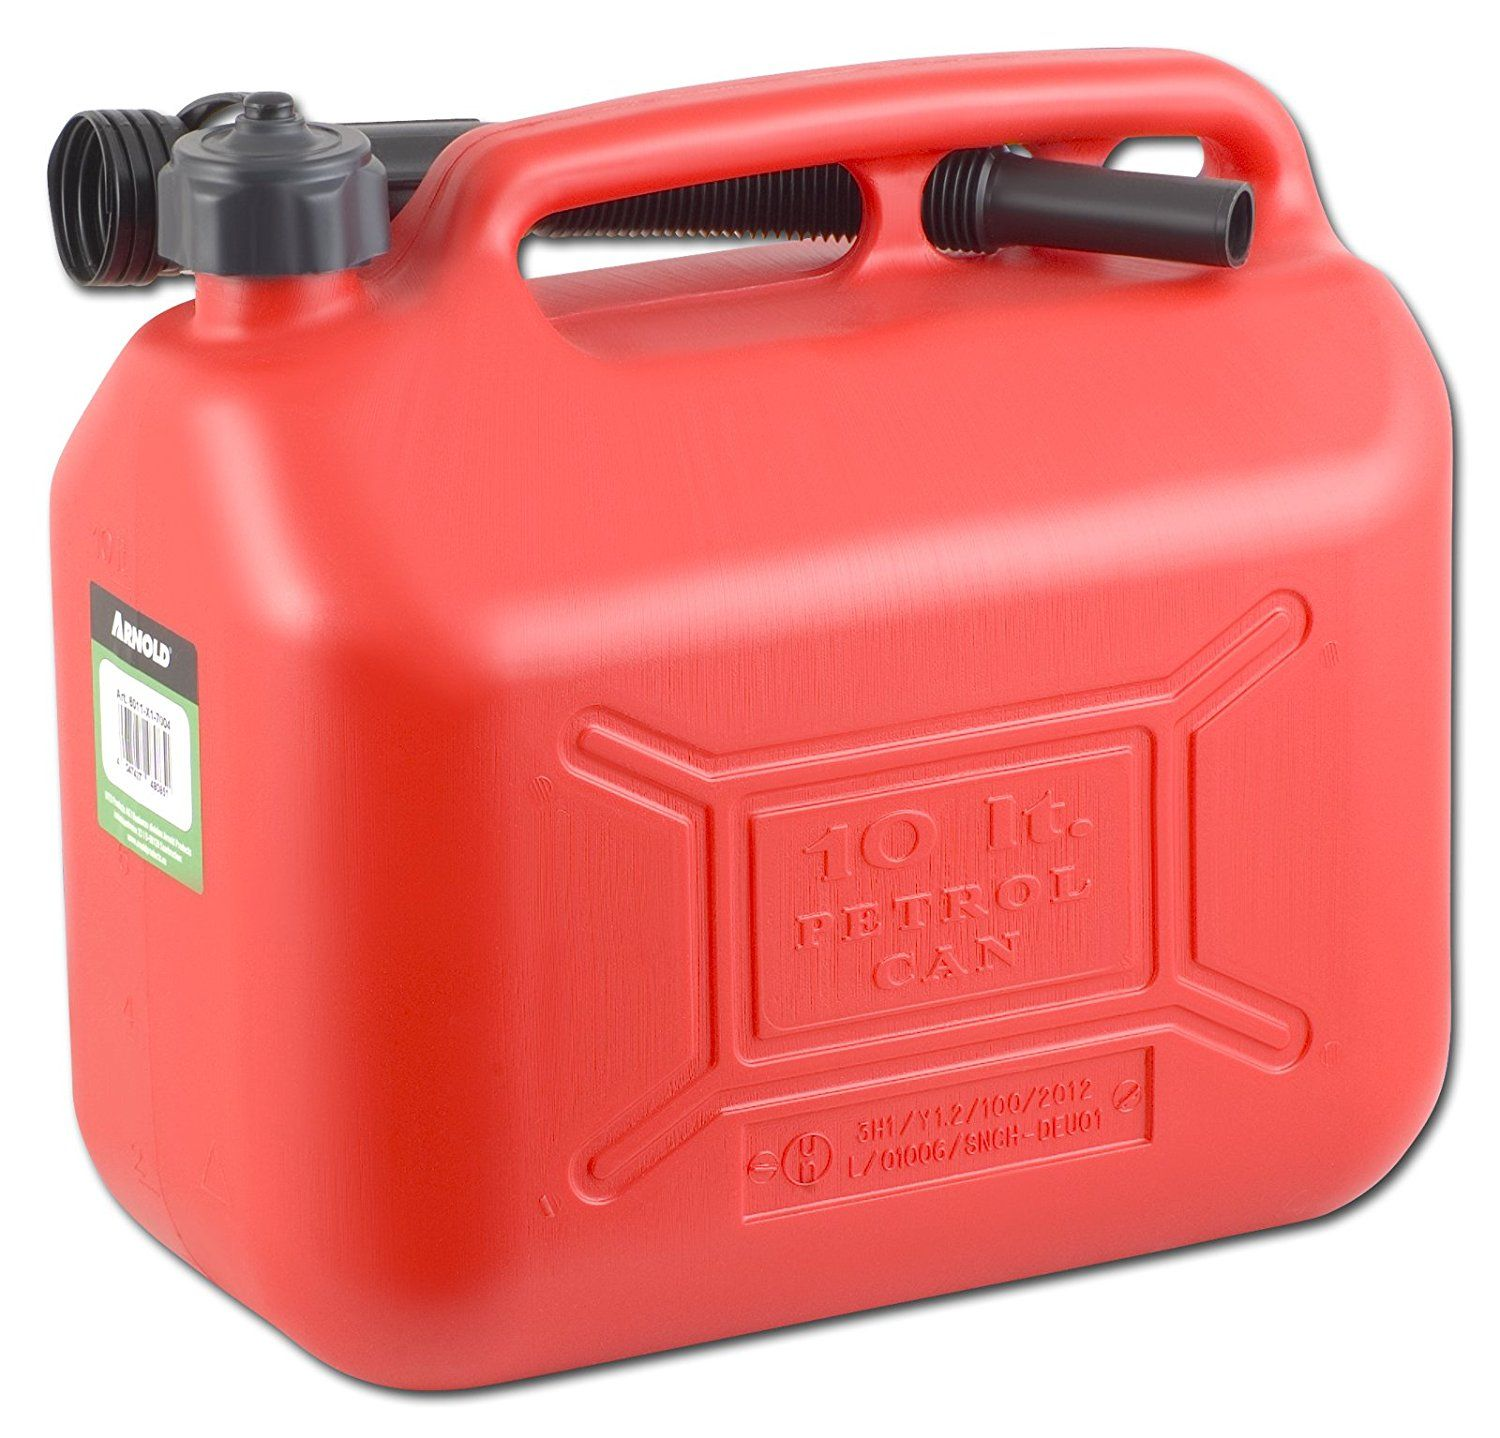 Arnold 6011 X1 7004 Fuel Canister 10 L Click On The Image For Filters